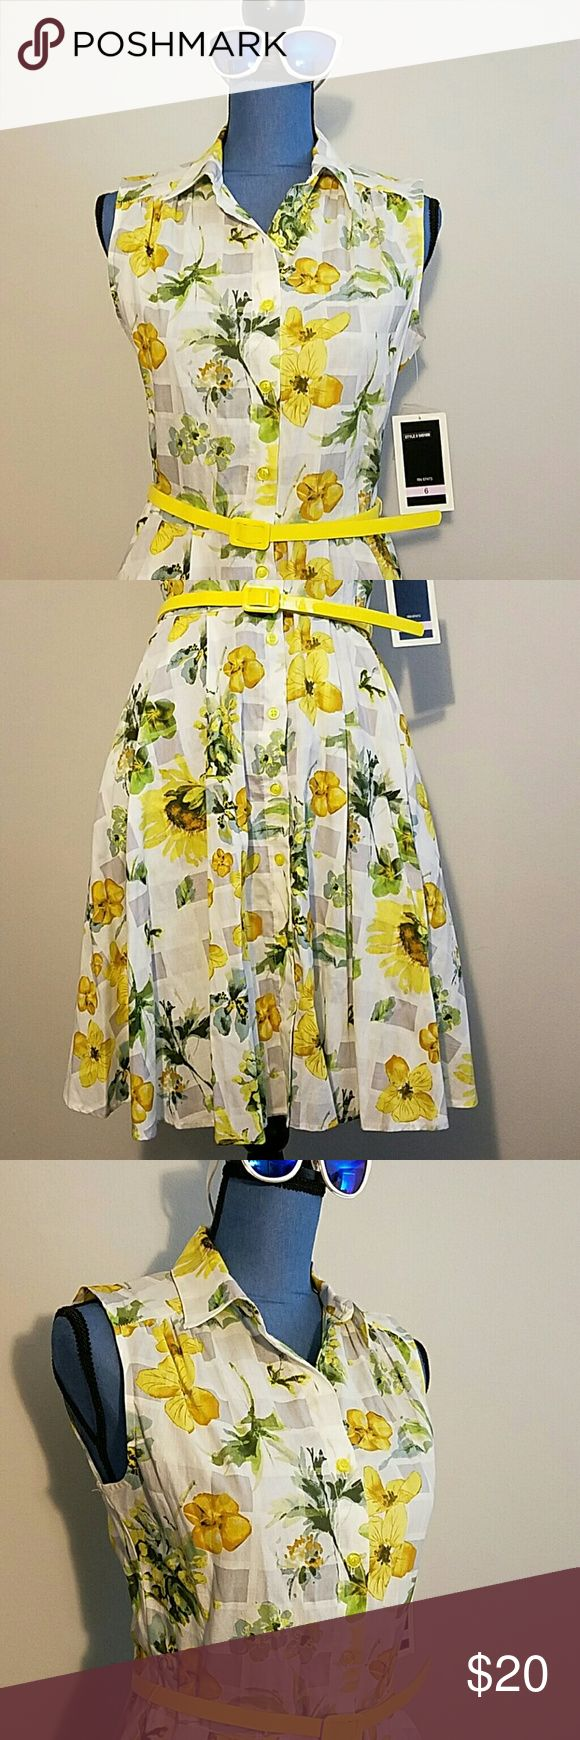 NWT Julian Taylor Sleeveless Floral Dress, Sz 6 New with tags Julian Taylor Sleeveless Floral Dress. Yellow sunflowers over light gray & white checked pattern. And it has pockets!!!  100% Cotton Size 6 Julian Taylor Dresses Midi